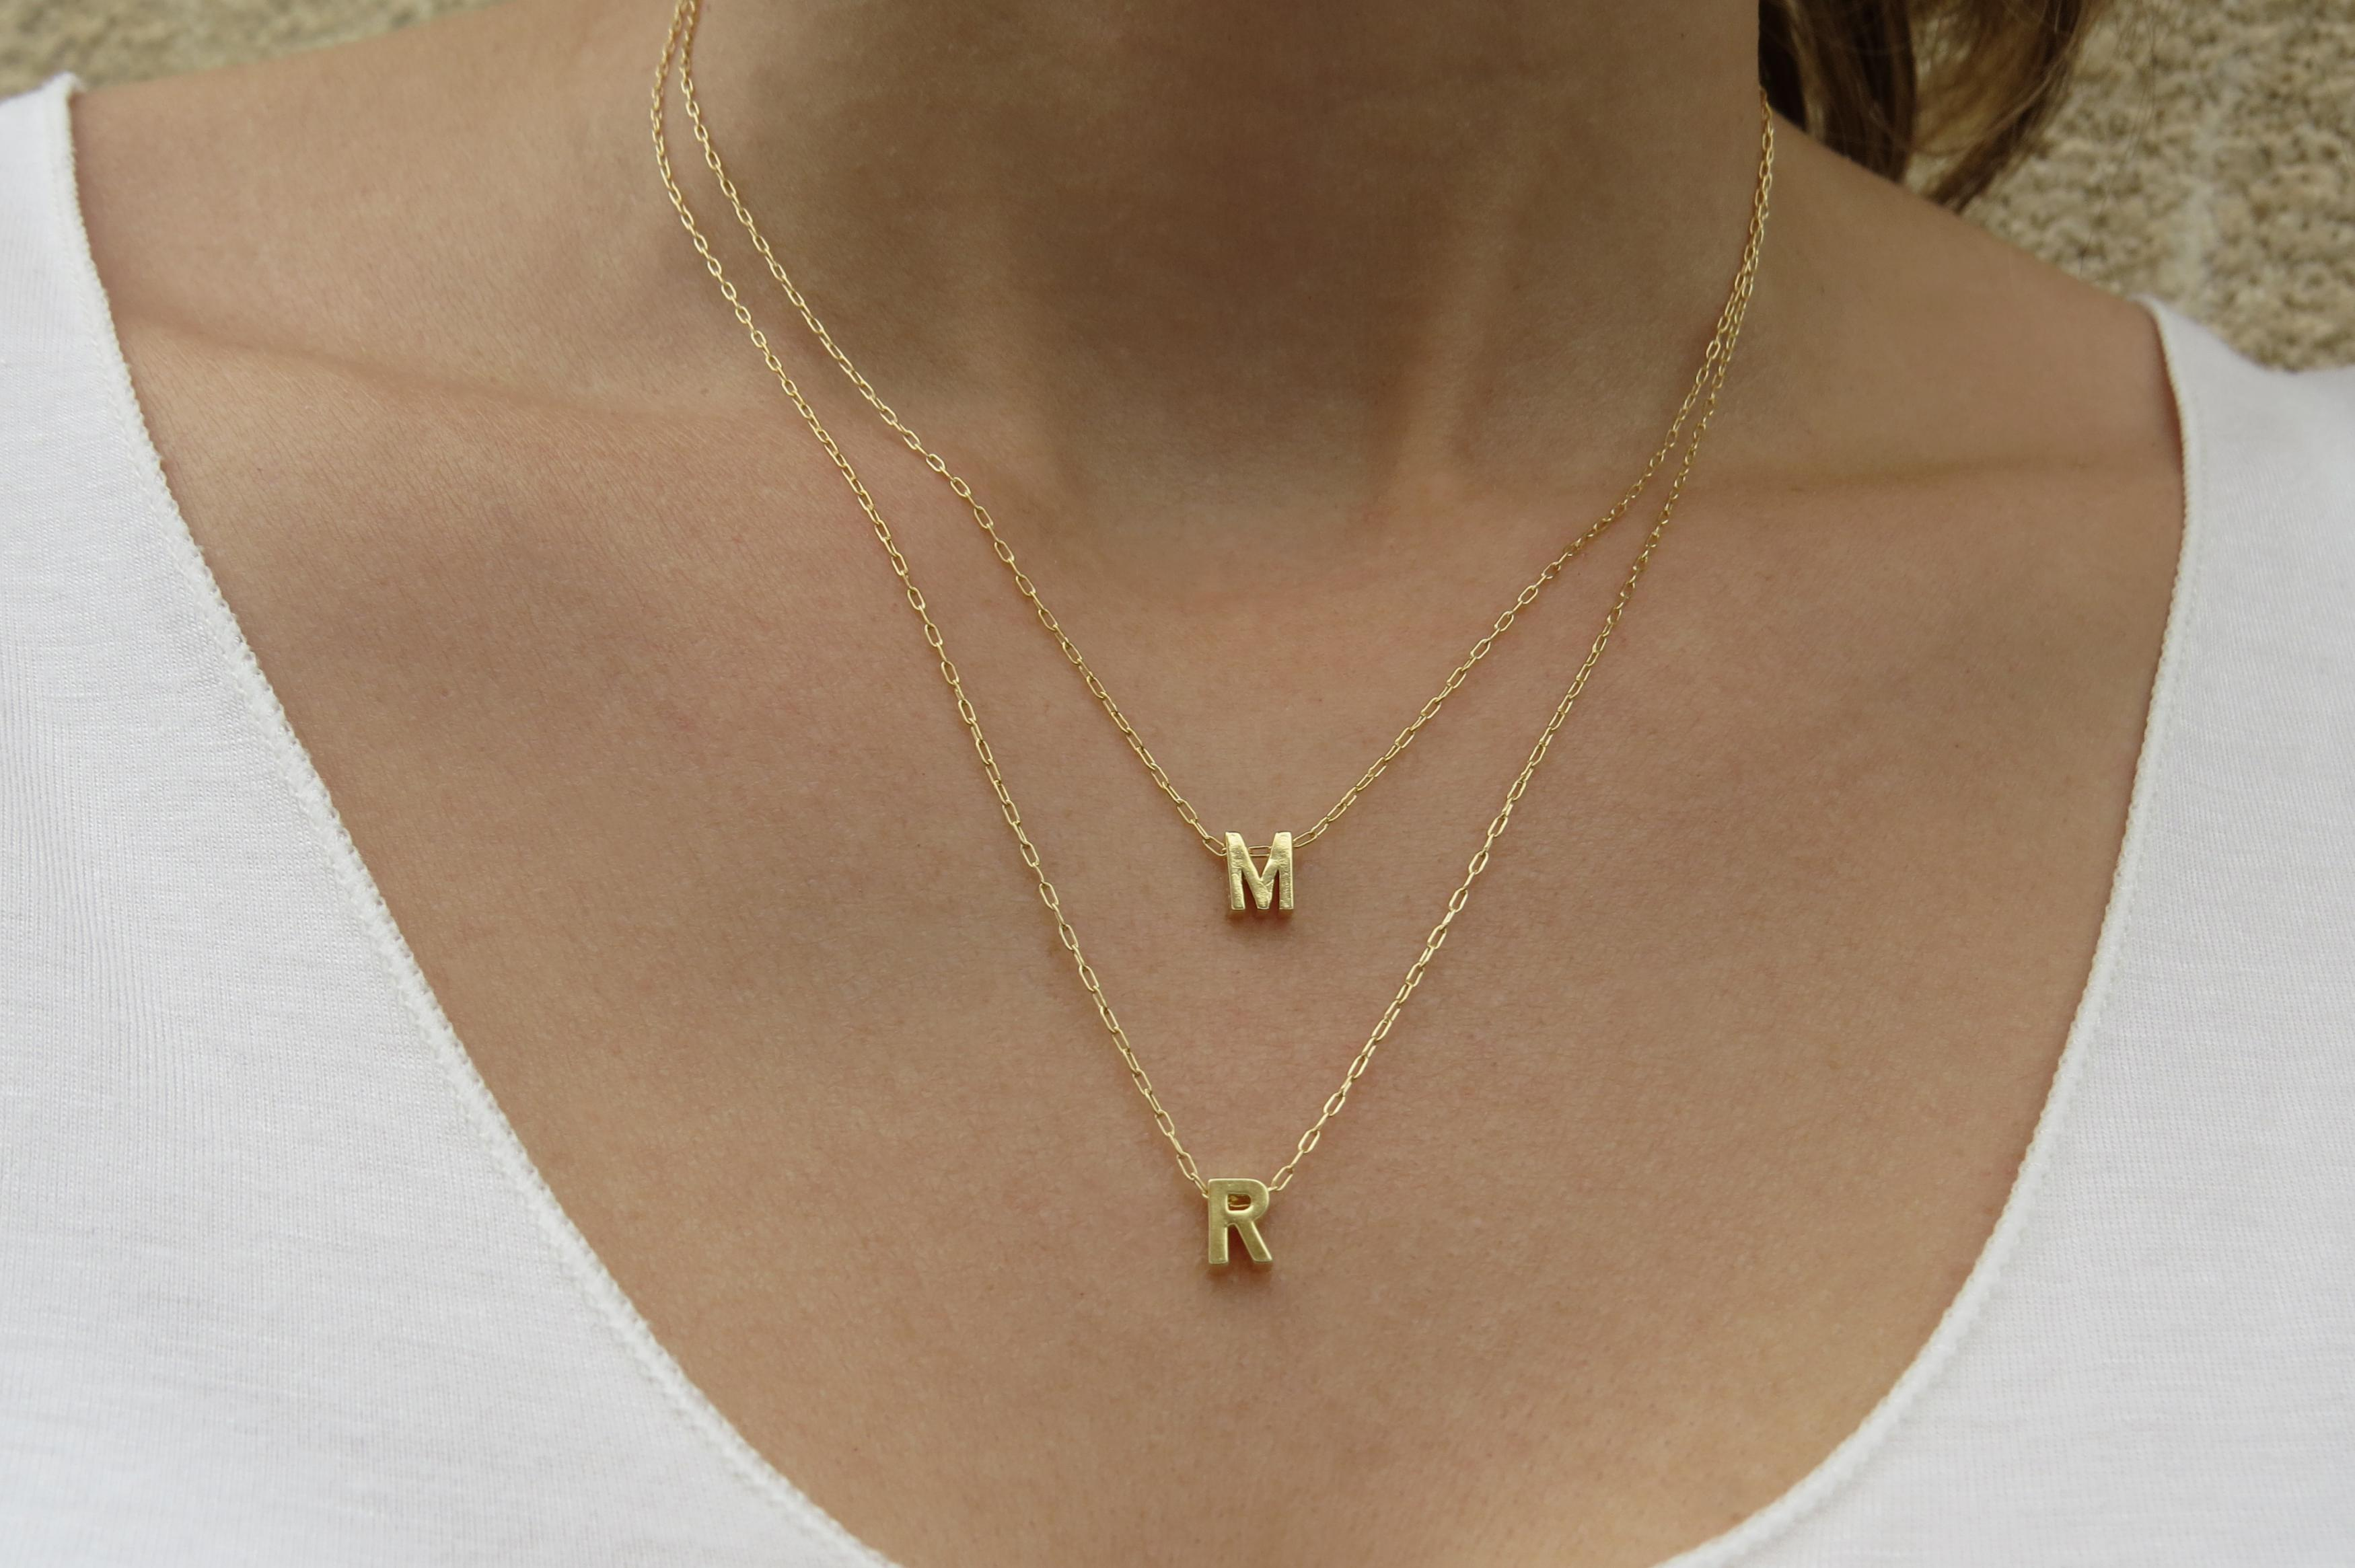 unique sideways necklace couples gift item tiny initial letter for personalized her idea